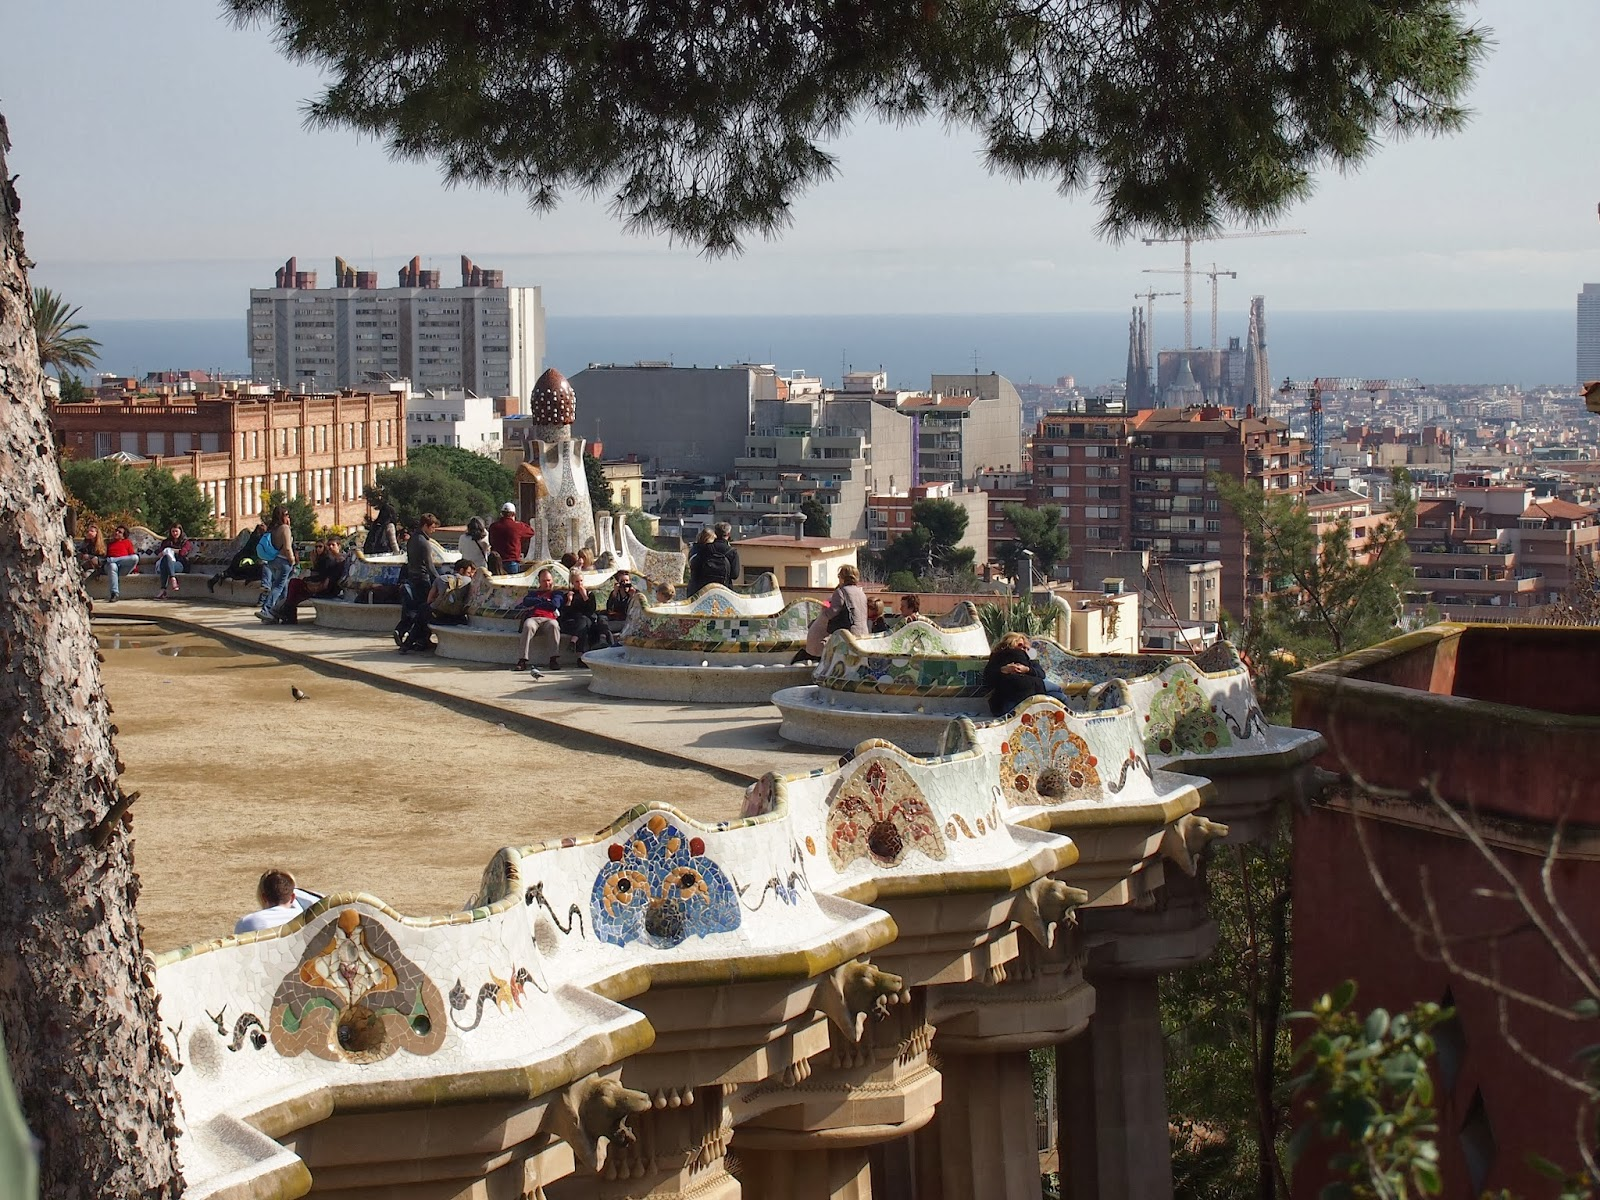 View from the upper portion of park guell